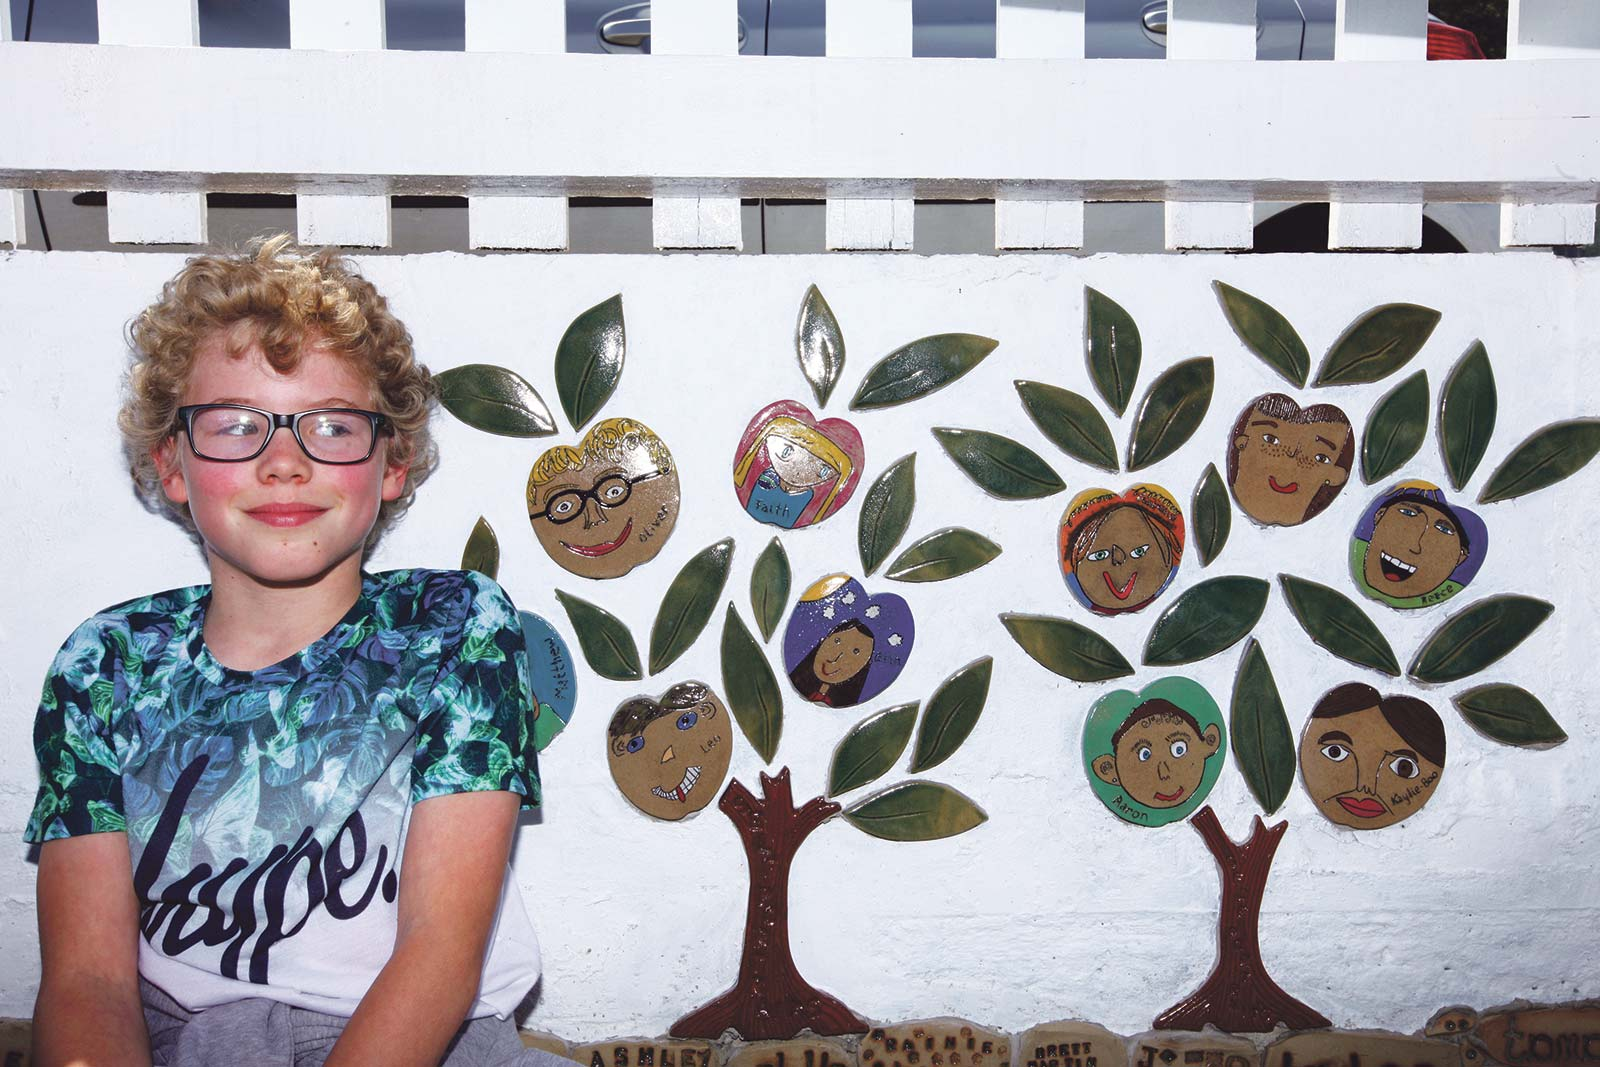 New artwork tiles at Gunnislake station - one of the young artists poses with the tile beaering his portrait